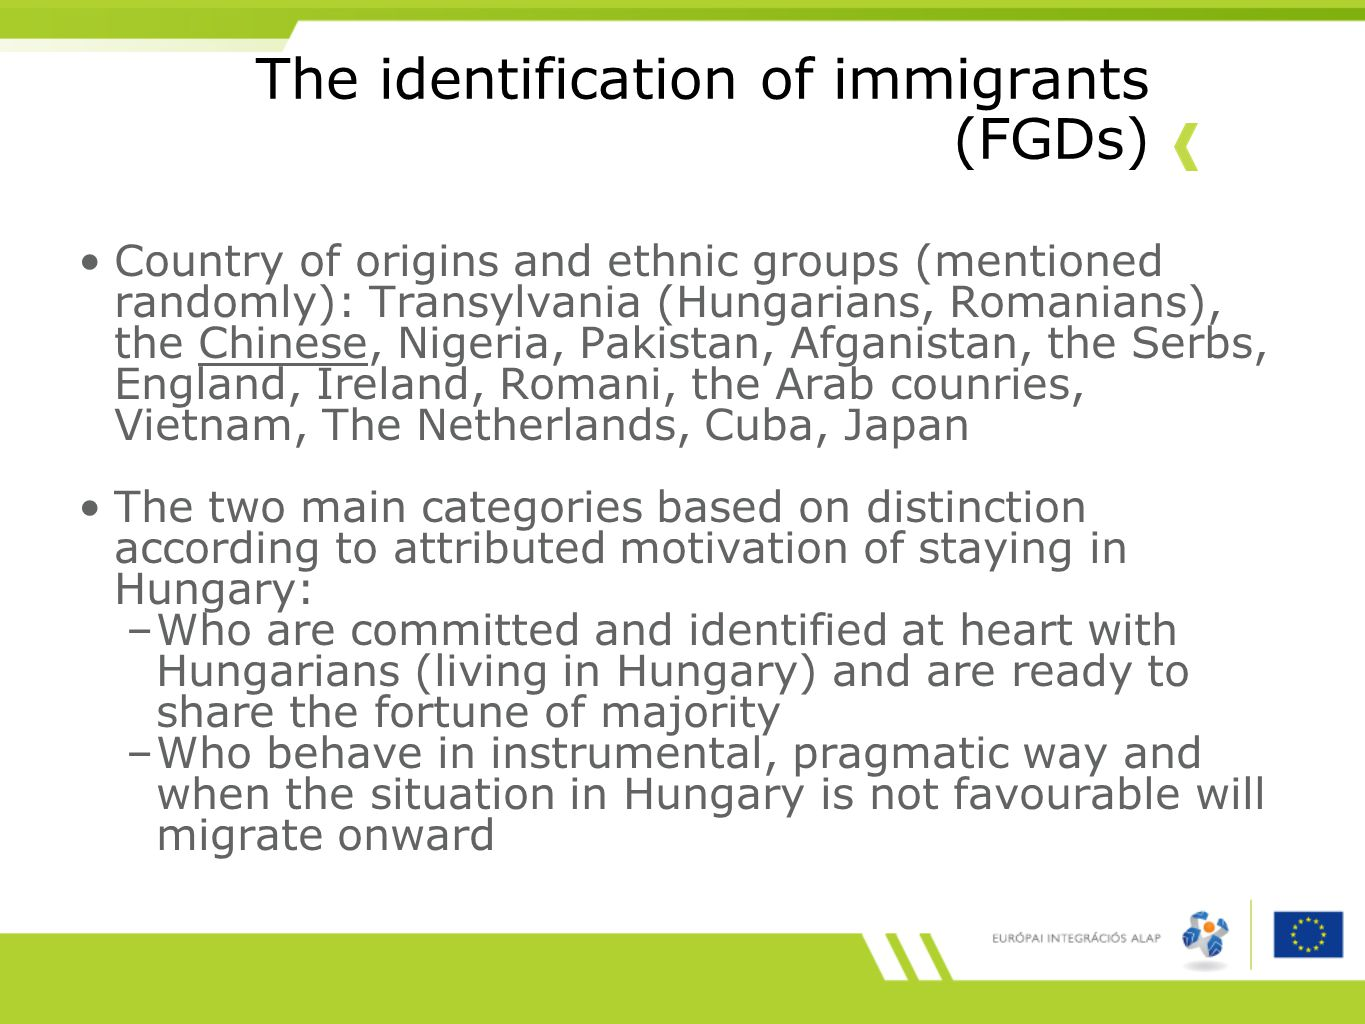 The identification of immigrants (FGDs) Country of origins and ethnic groups (mentioned randomly): Transylvania (Hungarians, Romanians), the Chinese, Nigeria, Pakistan, Afganistan, the Serbs, England, Ireland, Romani, the Arab counries, Vietnam, The Netherlands, Cuba, Japan The two main categories based on distinction according to attributed motivation of staying in Hungary: –Who are committed and identified at heart with Hungarians (living in Hungary) and are ready to share the fortune of majority –Who behave in instrumental, pragmatic way and when the situation in Hungary is not favourable will migrate onward